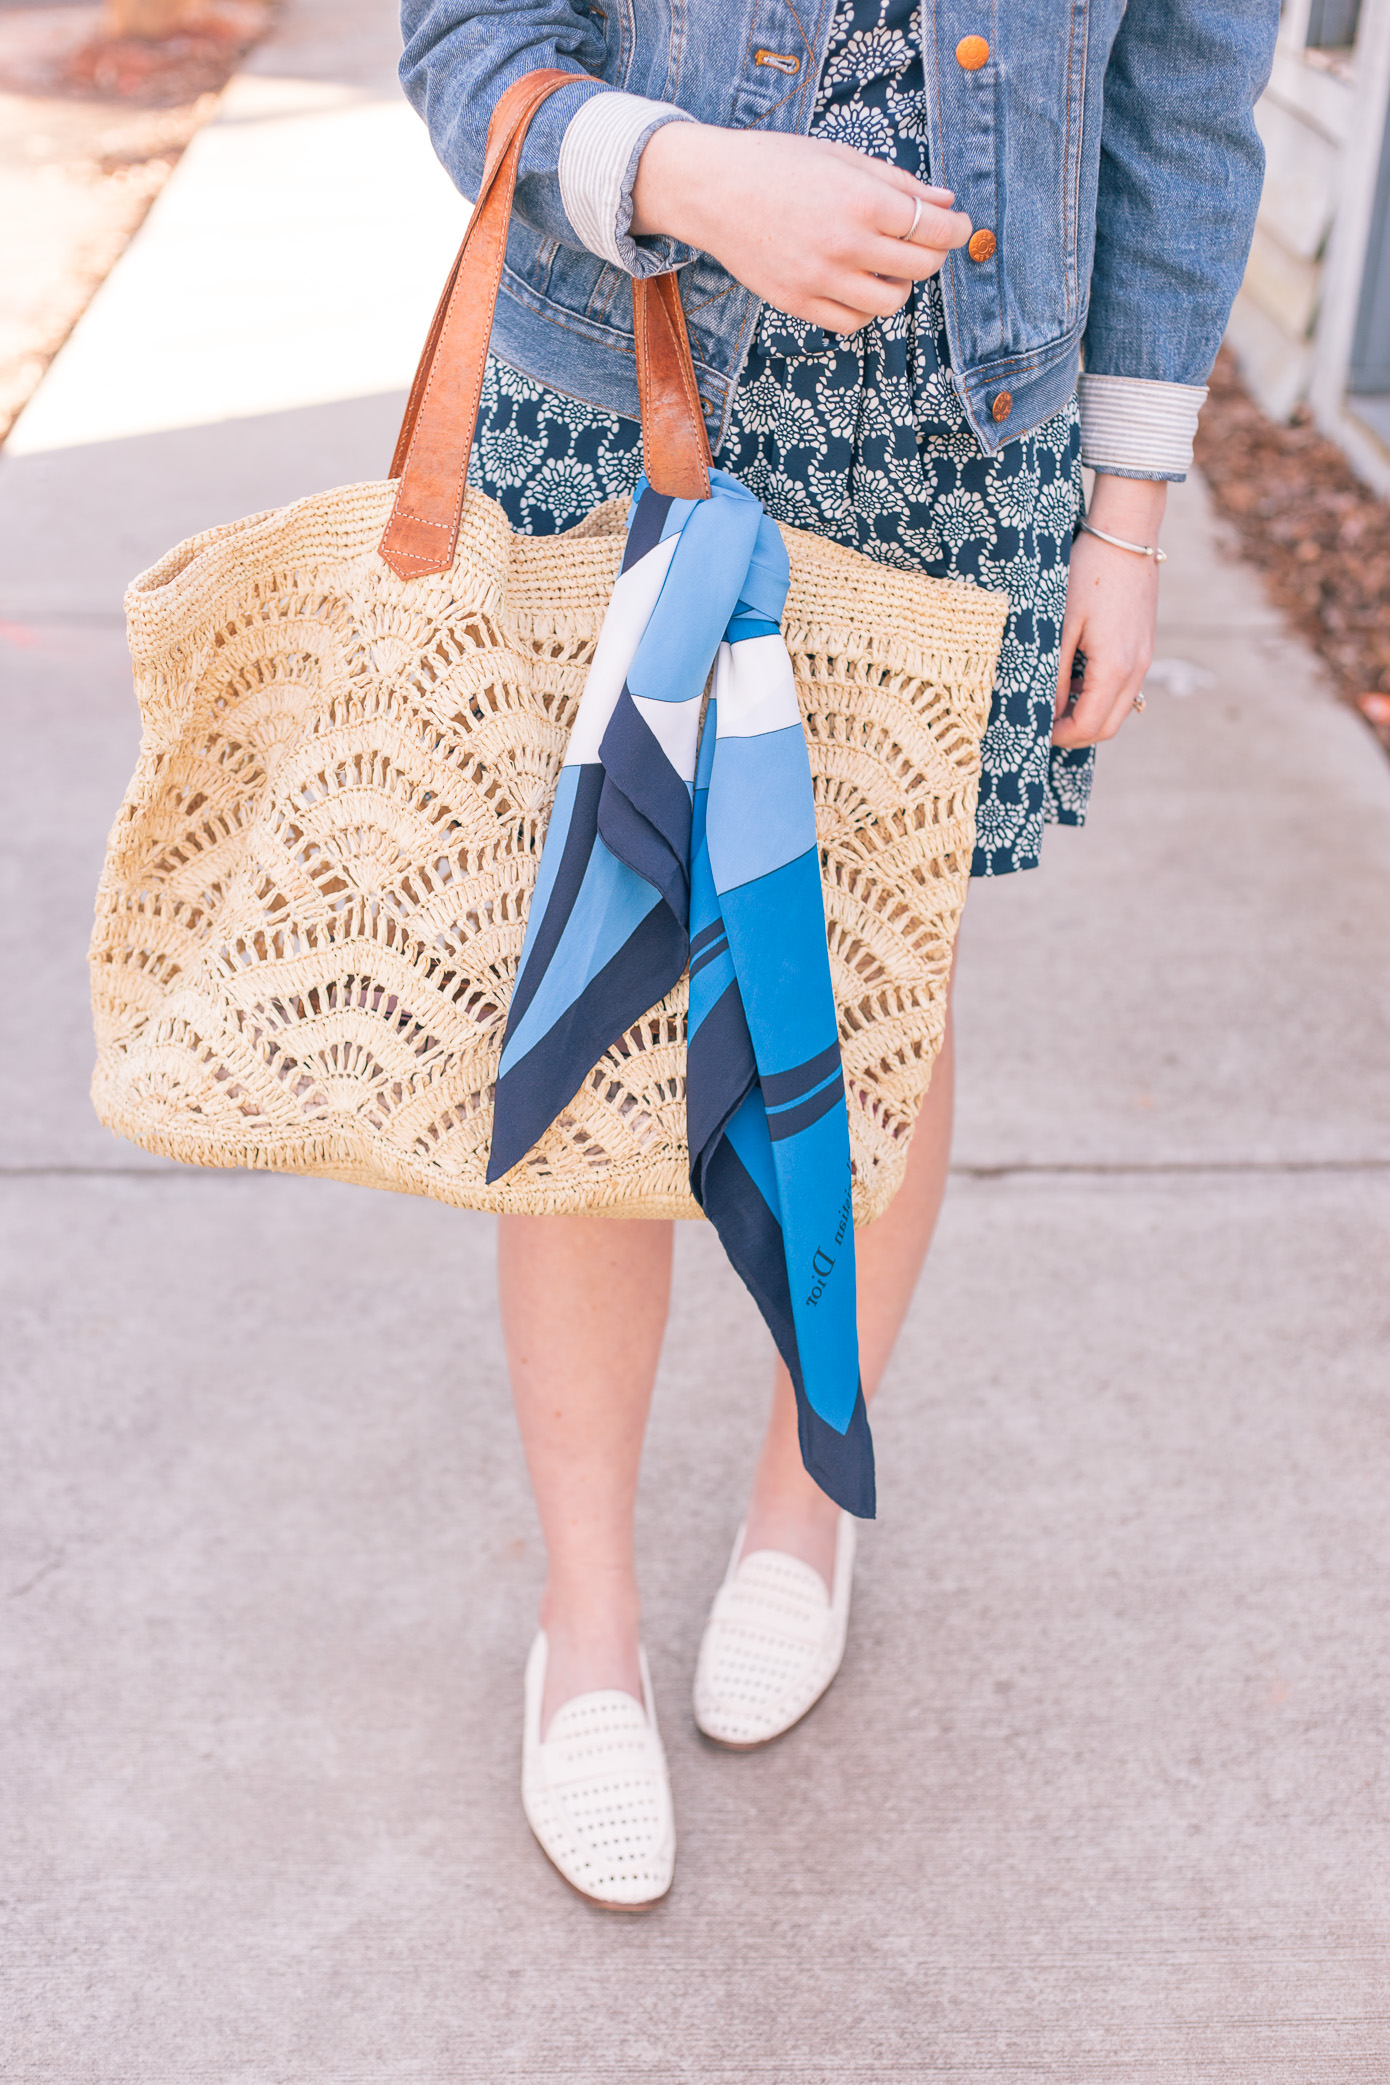 Casual Knit Dress for Spring + Oversized Straw Tote | Louella Reese Life & Style Blog